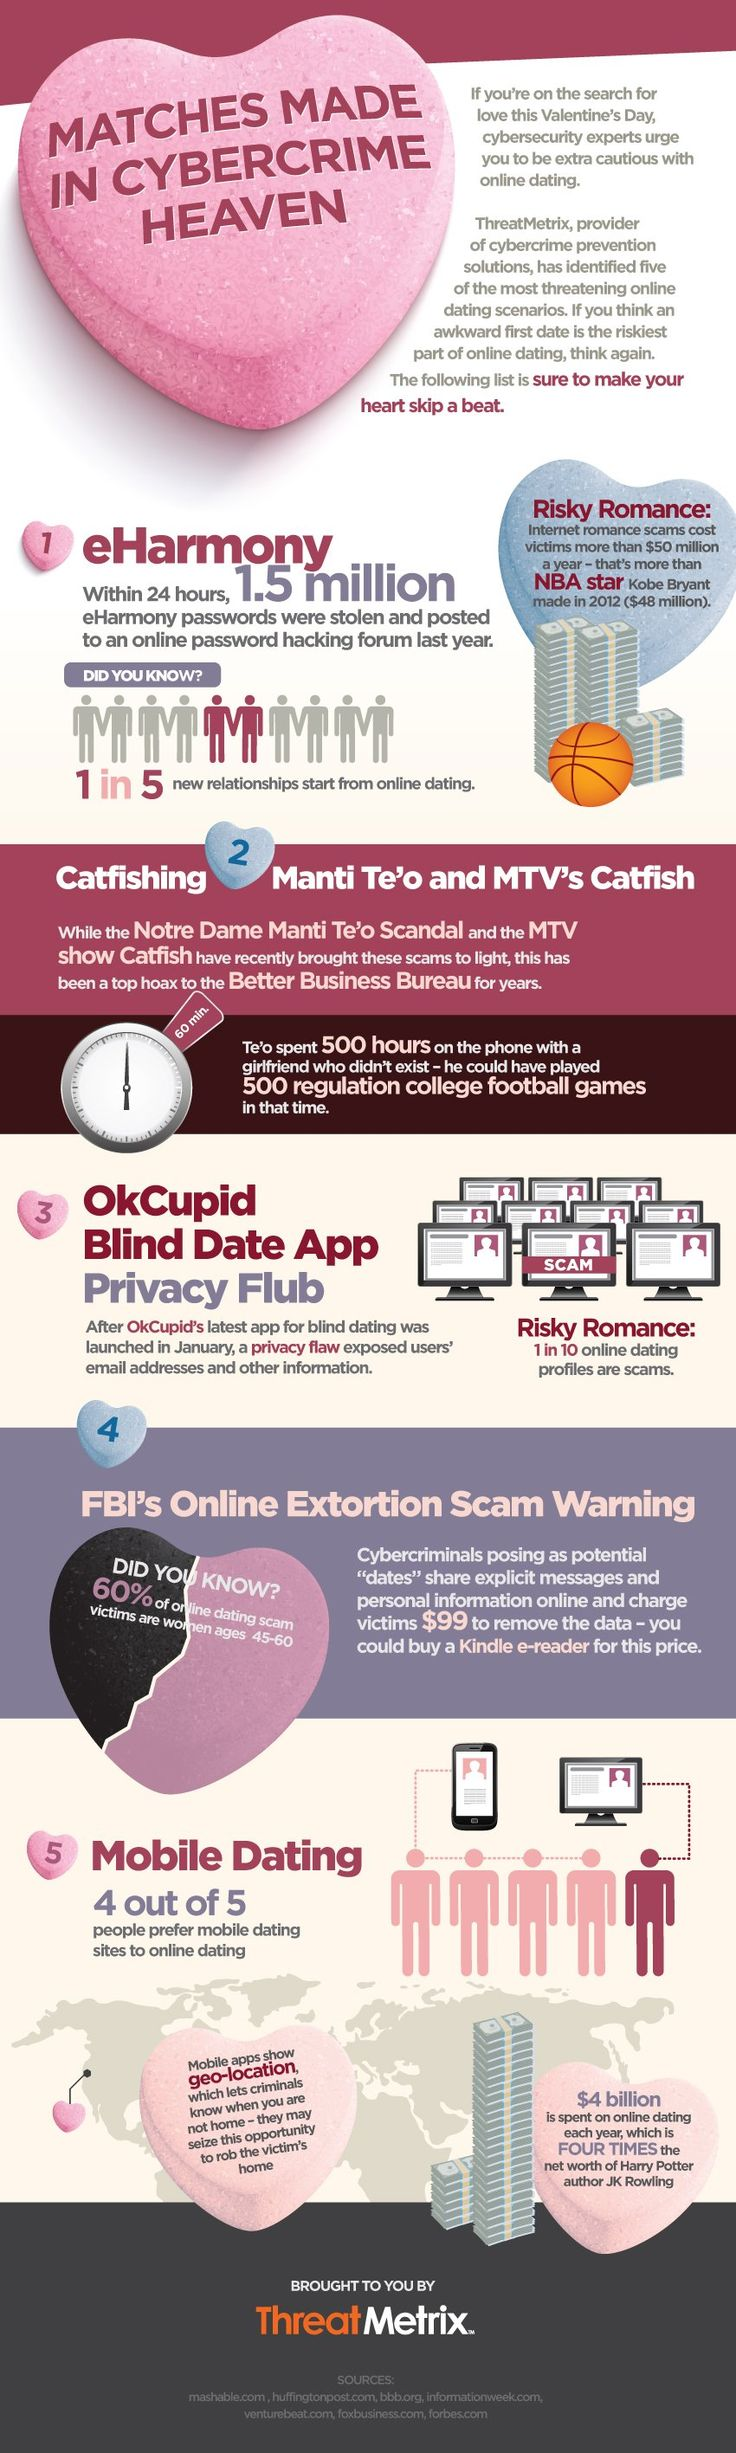 4 Billion spent on online dating every year & Online Dating #scams cost victims more than 50 million dollars each year. Matches Made in Cybercrime Heaven #OnlineDating #Safety